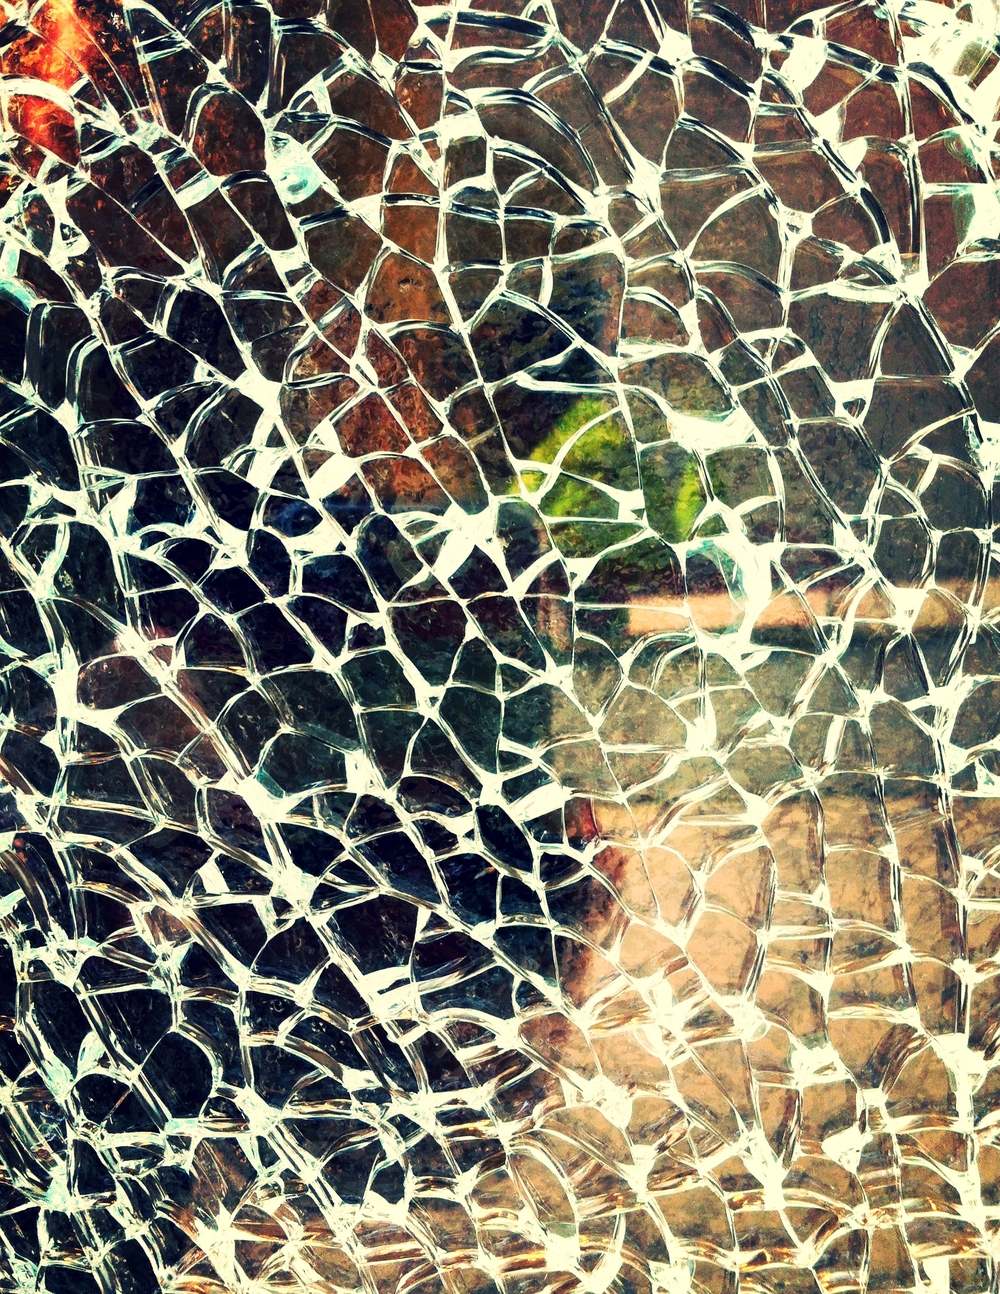 Distorted_reflection_of_Lindsay_in_a_shattered_window